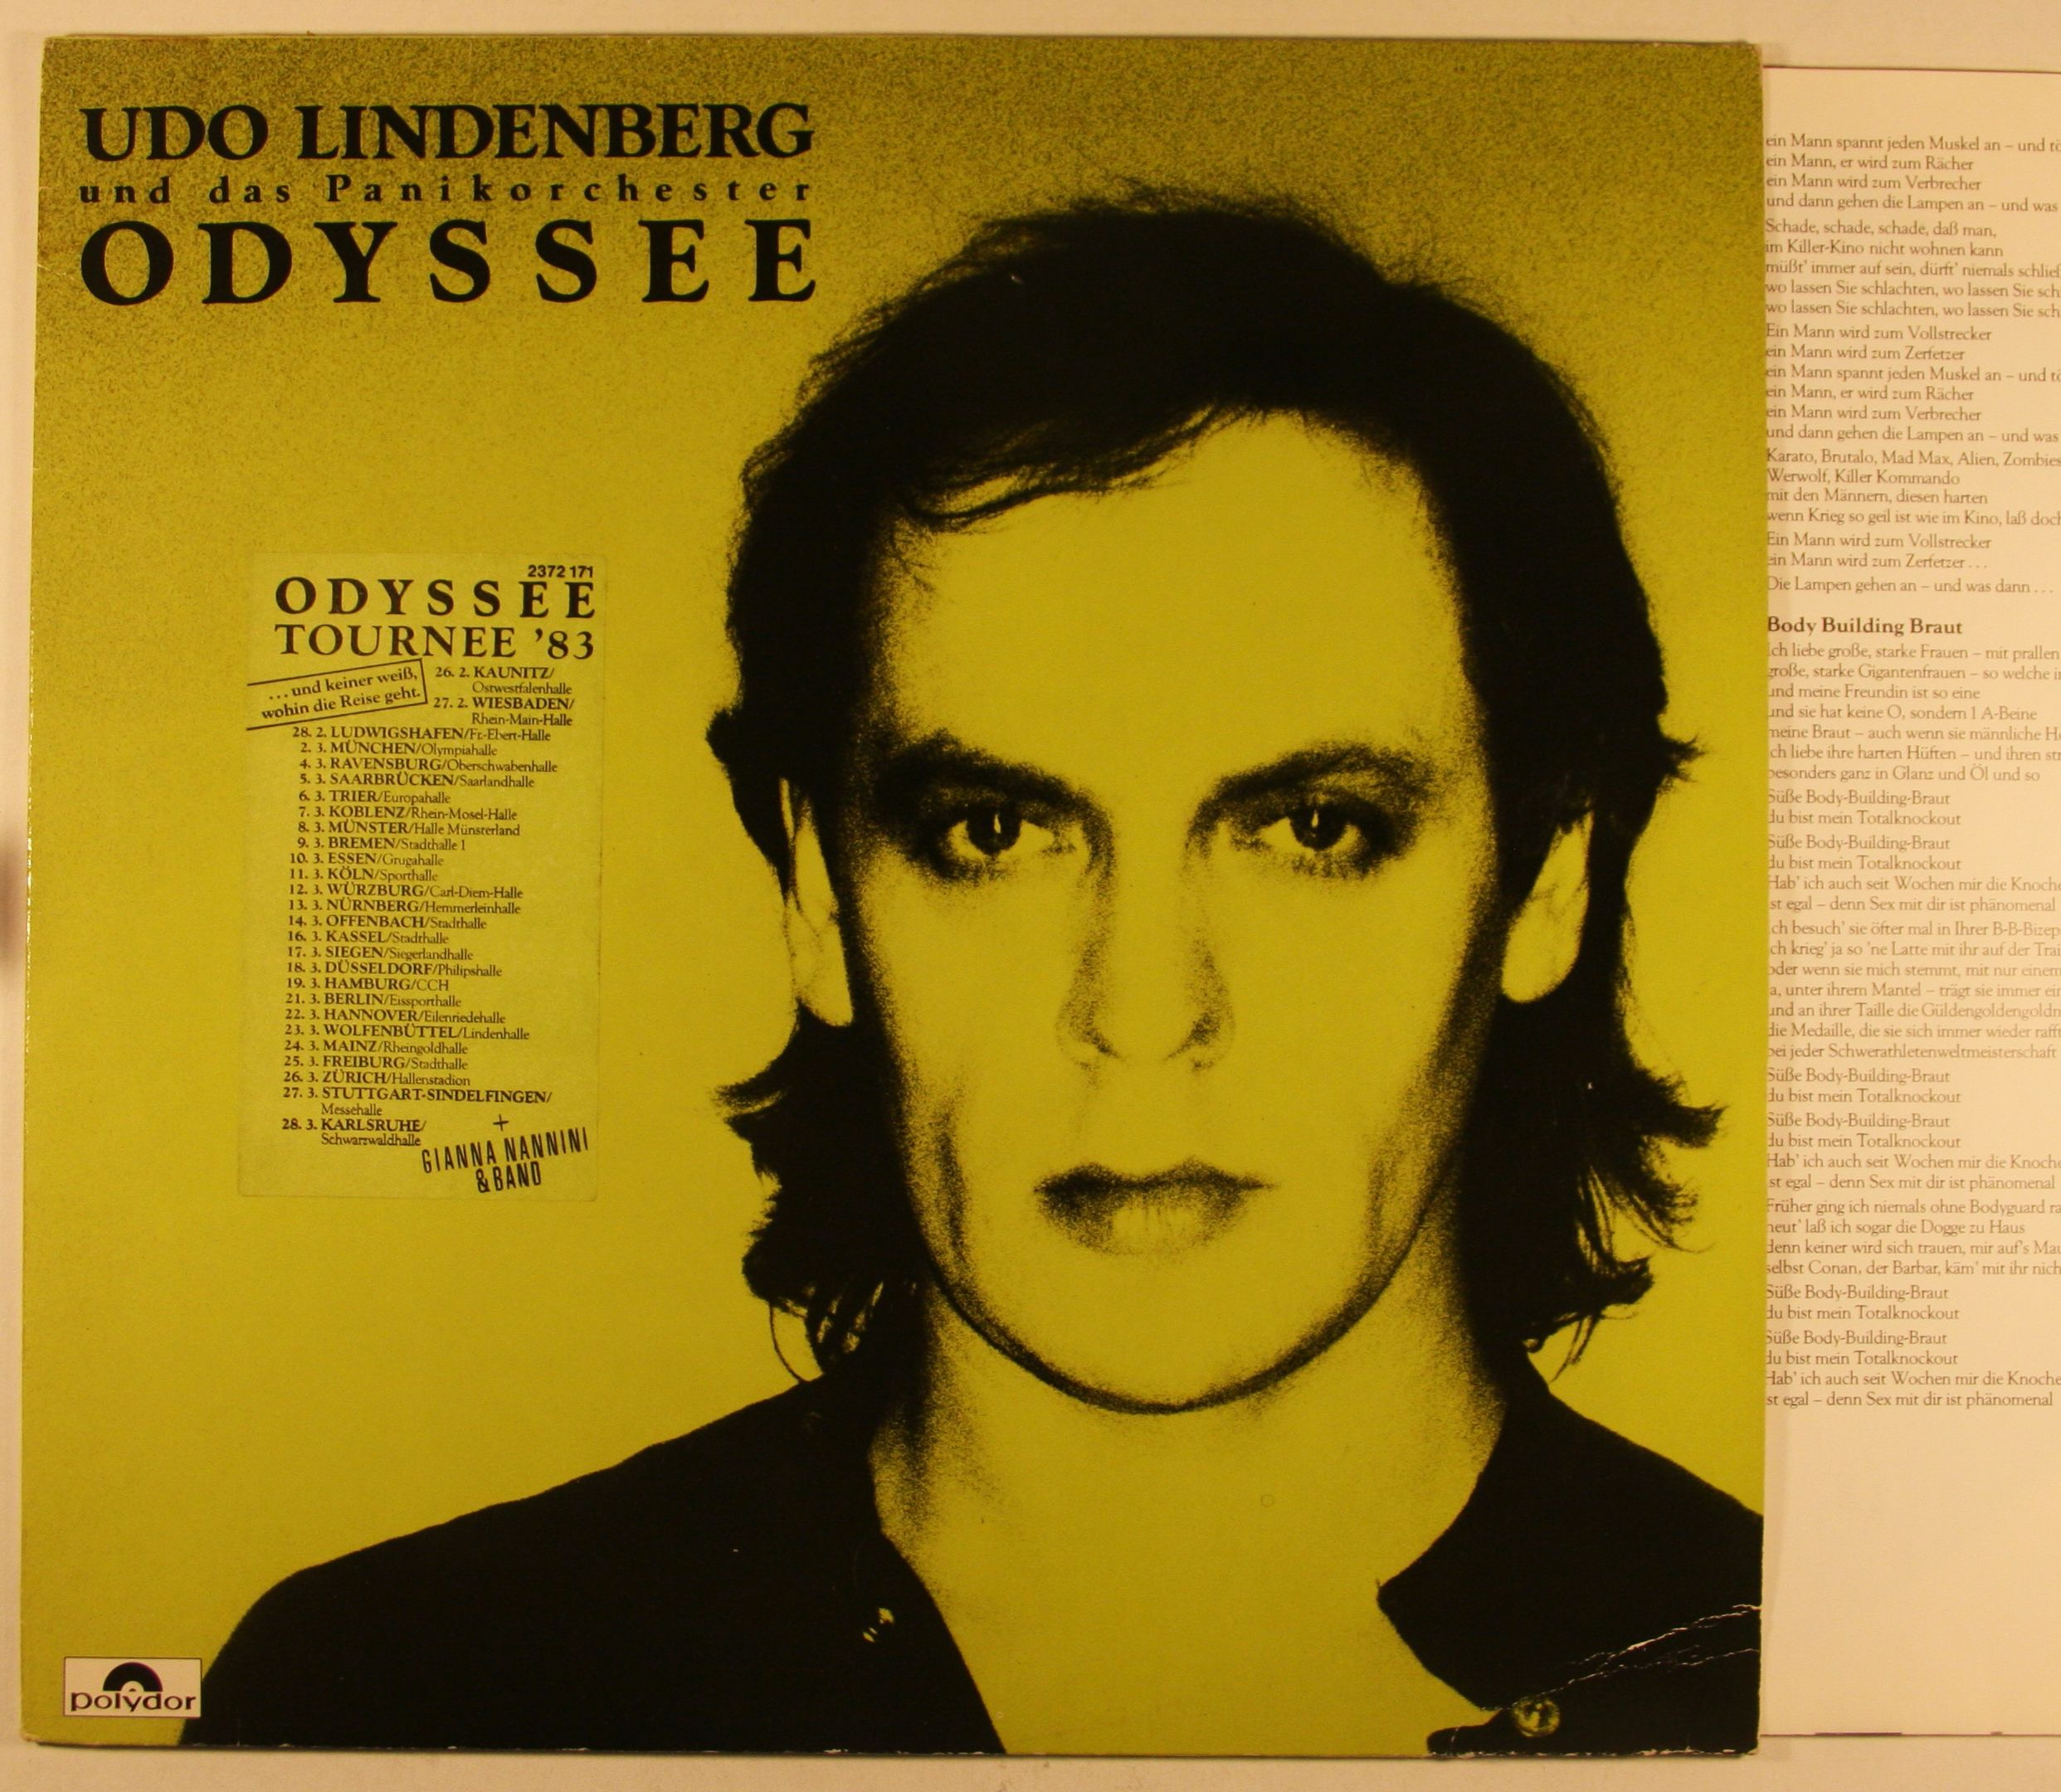 Udo Lindenberg Odyssee Records, LPs, Vinyl and CDs - MusicStack